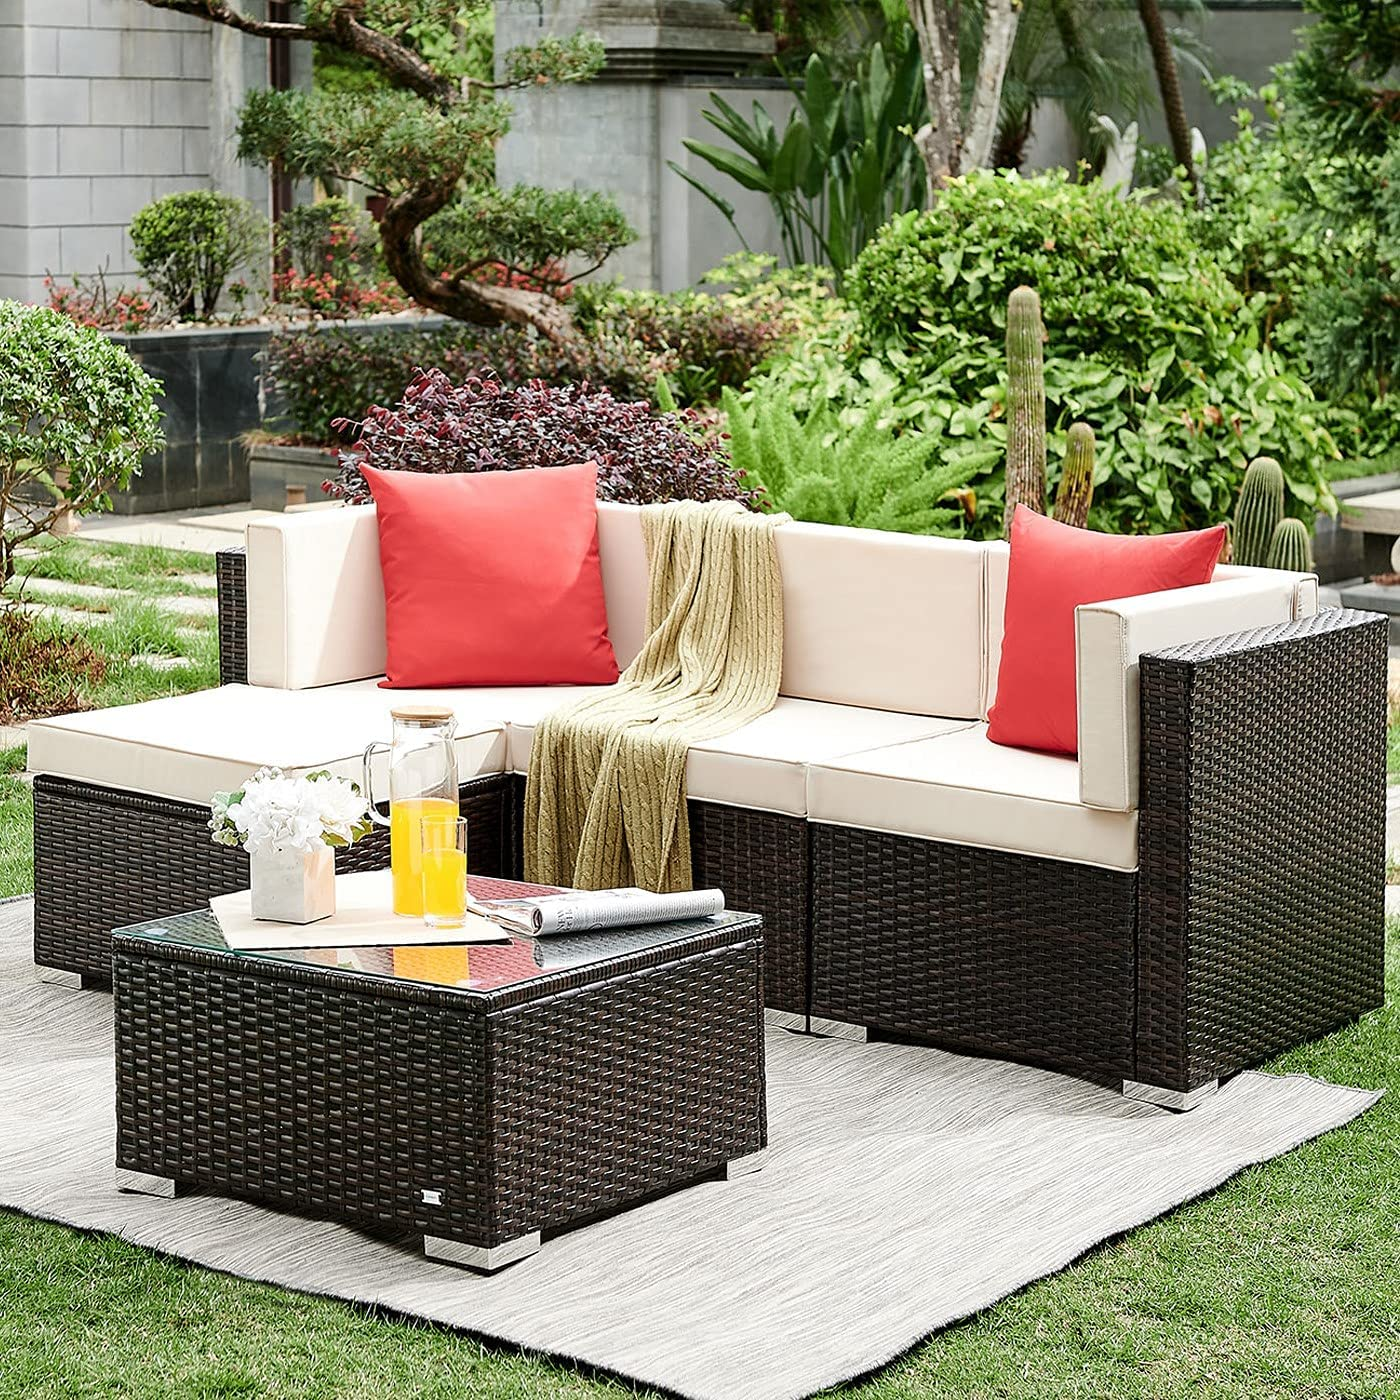 HONBAY Outdoor Patio Sectional Set Ratta Sofa Super Special SALE held 2021 new